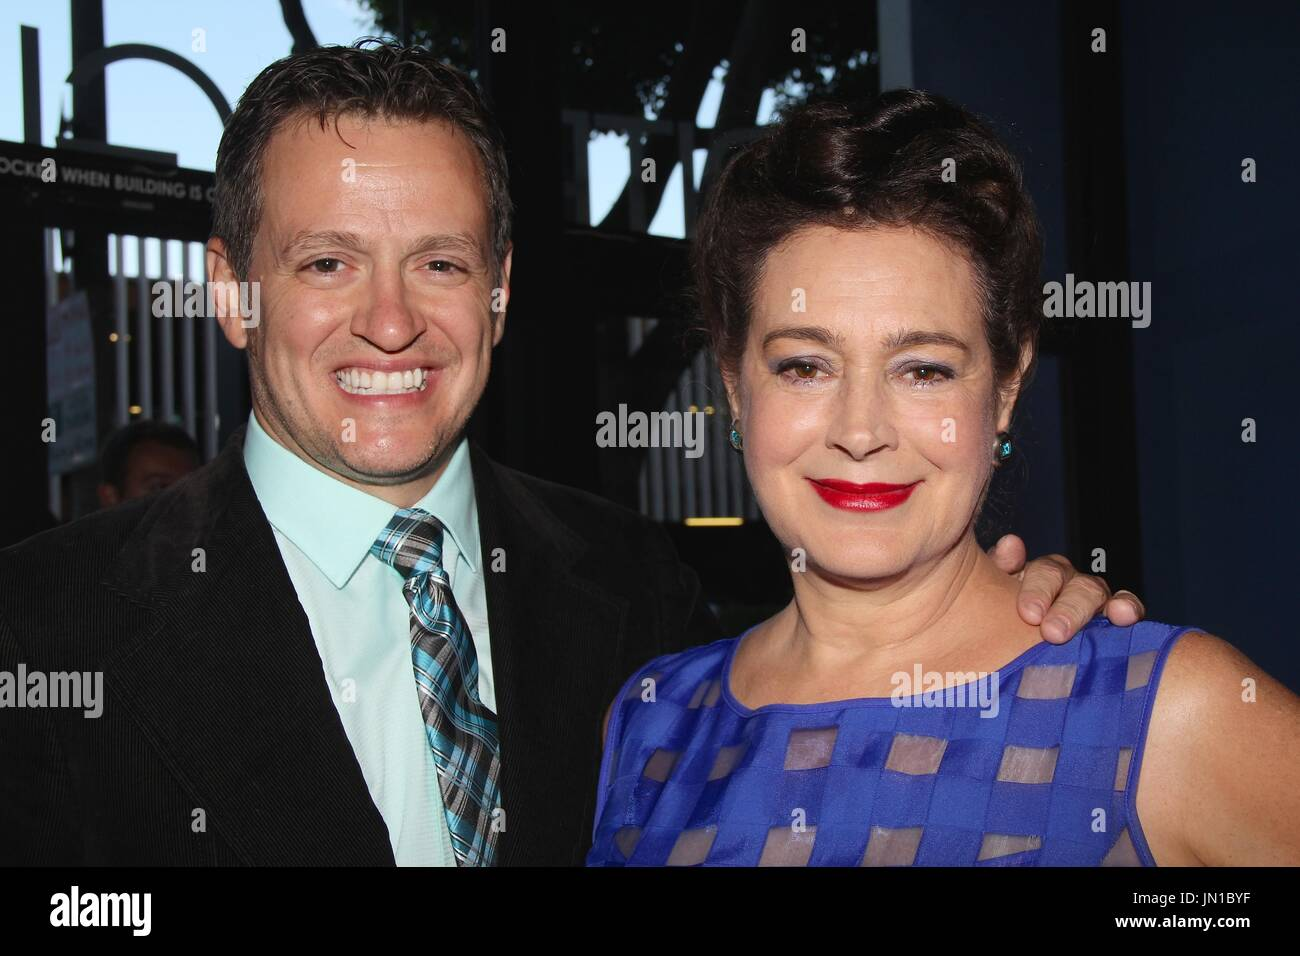 Hollywood, California, USA. 27th July, 2017. I15915CHW.''IN VINO: Family Secrets To Die For'' Los Angeles VIP Sneak Preview Screening .Writers Guild Theatre, Beverly Hills, California, USA.07/27/2017.TOM MALLOY (PRODUCER) AND SEAN YOUNG . © Clinton H.Wallace/Photomundo International/ Photos Inc Credit: Clinton Wallace/Globe Photos/ZUMA Wire/Alamy Live News - Stock Image